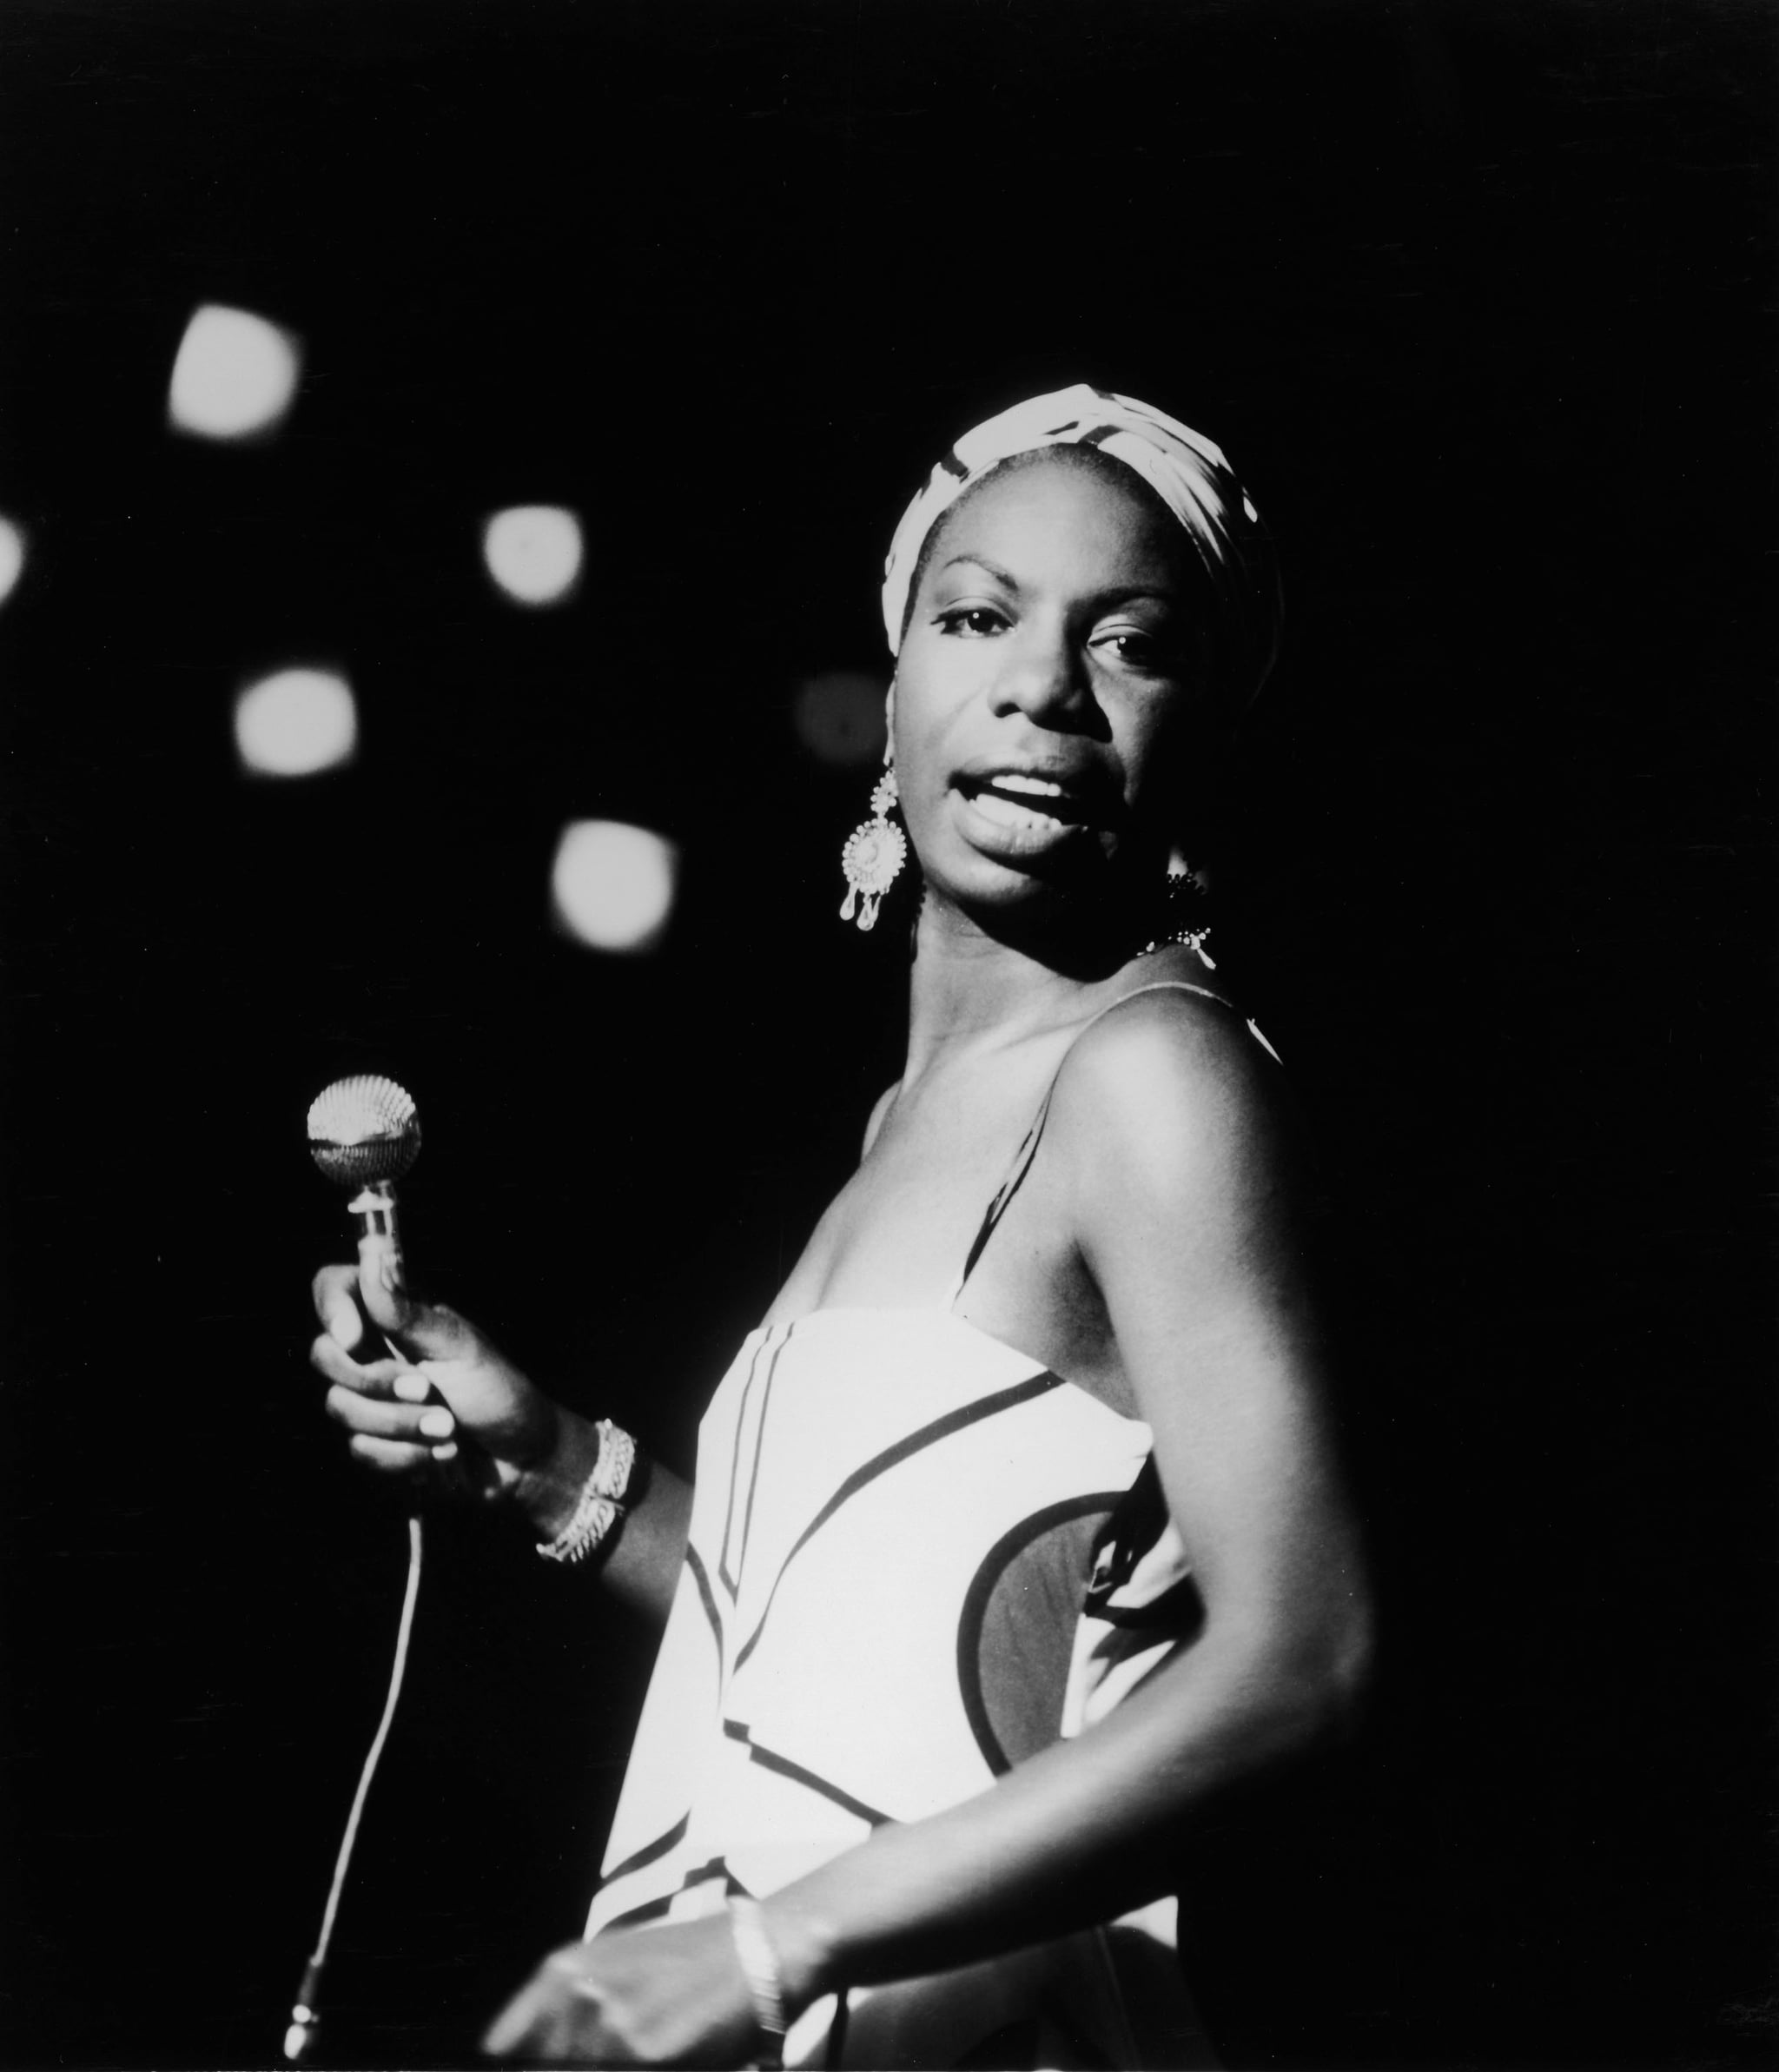 Googlier nuclear search date 20180221 nina simone performing in 1964 image source getty hulton archive fandeluxe Image collections